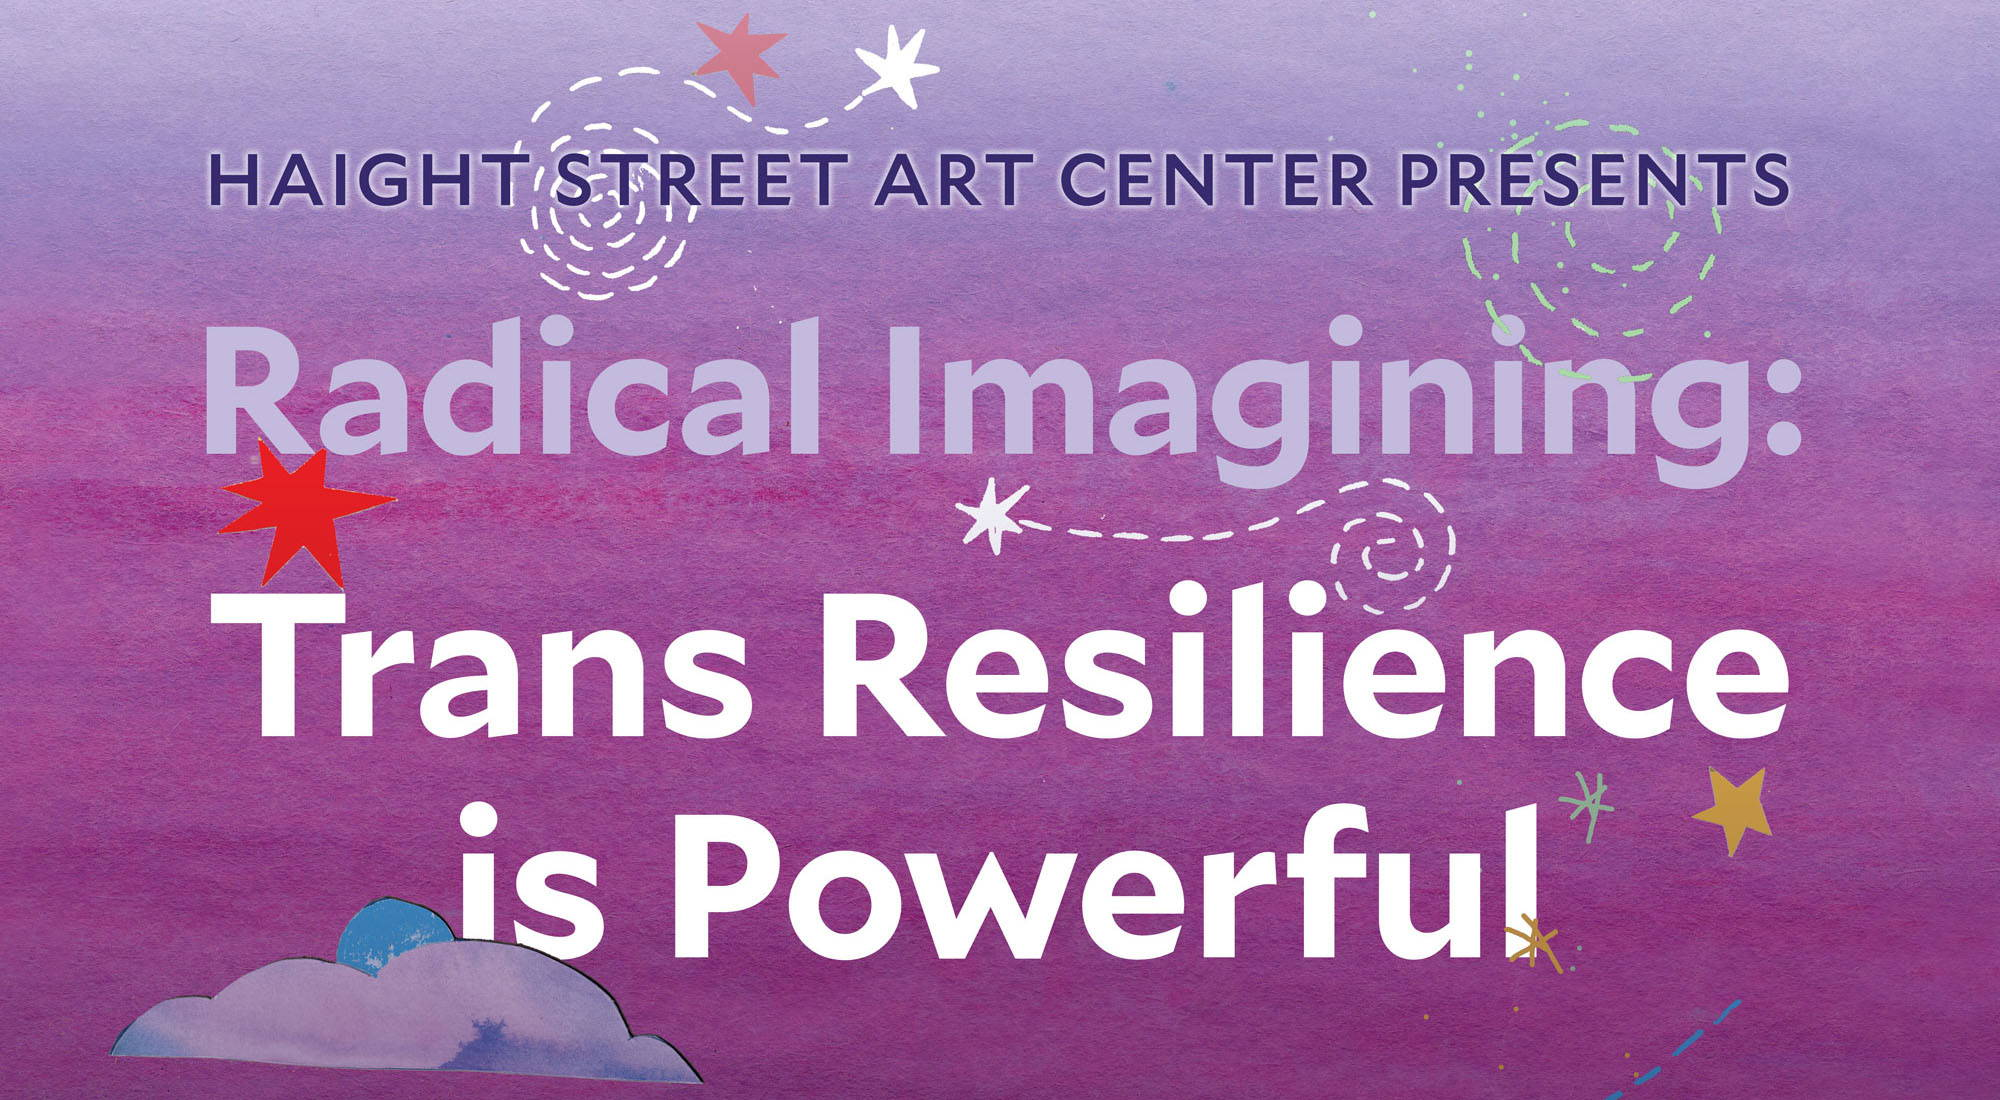 Trans Resilience is Powerful